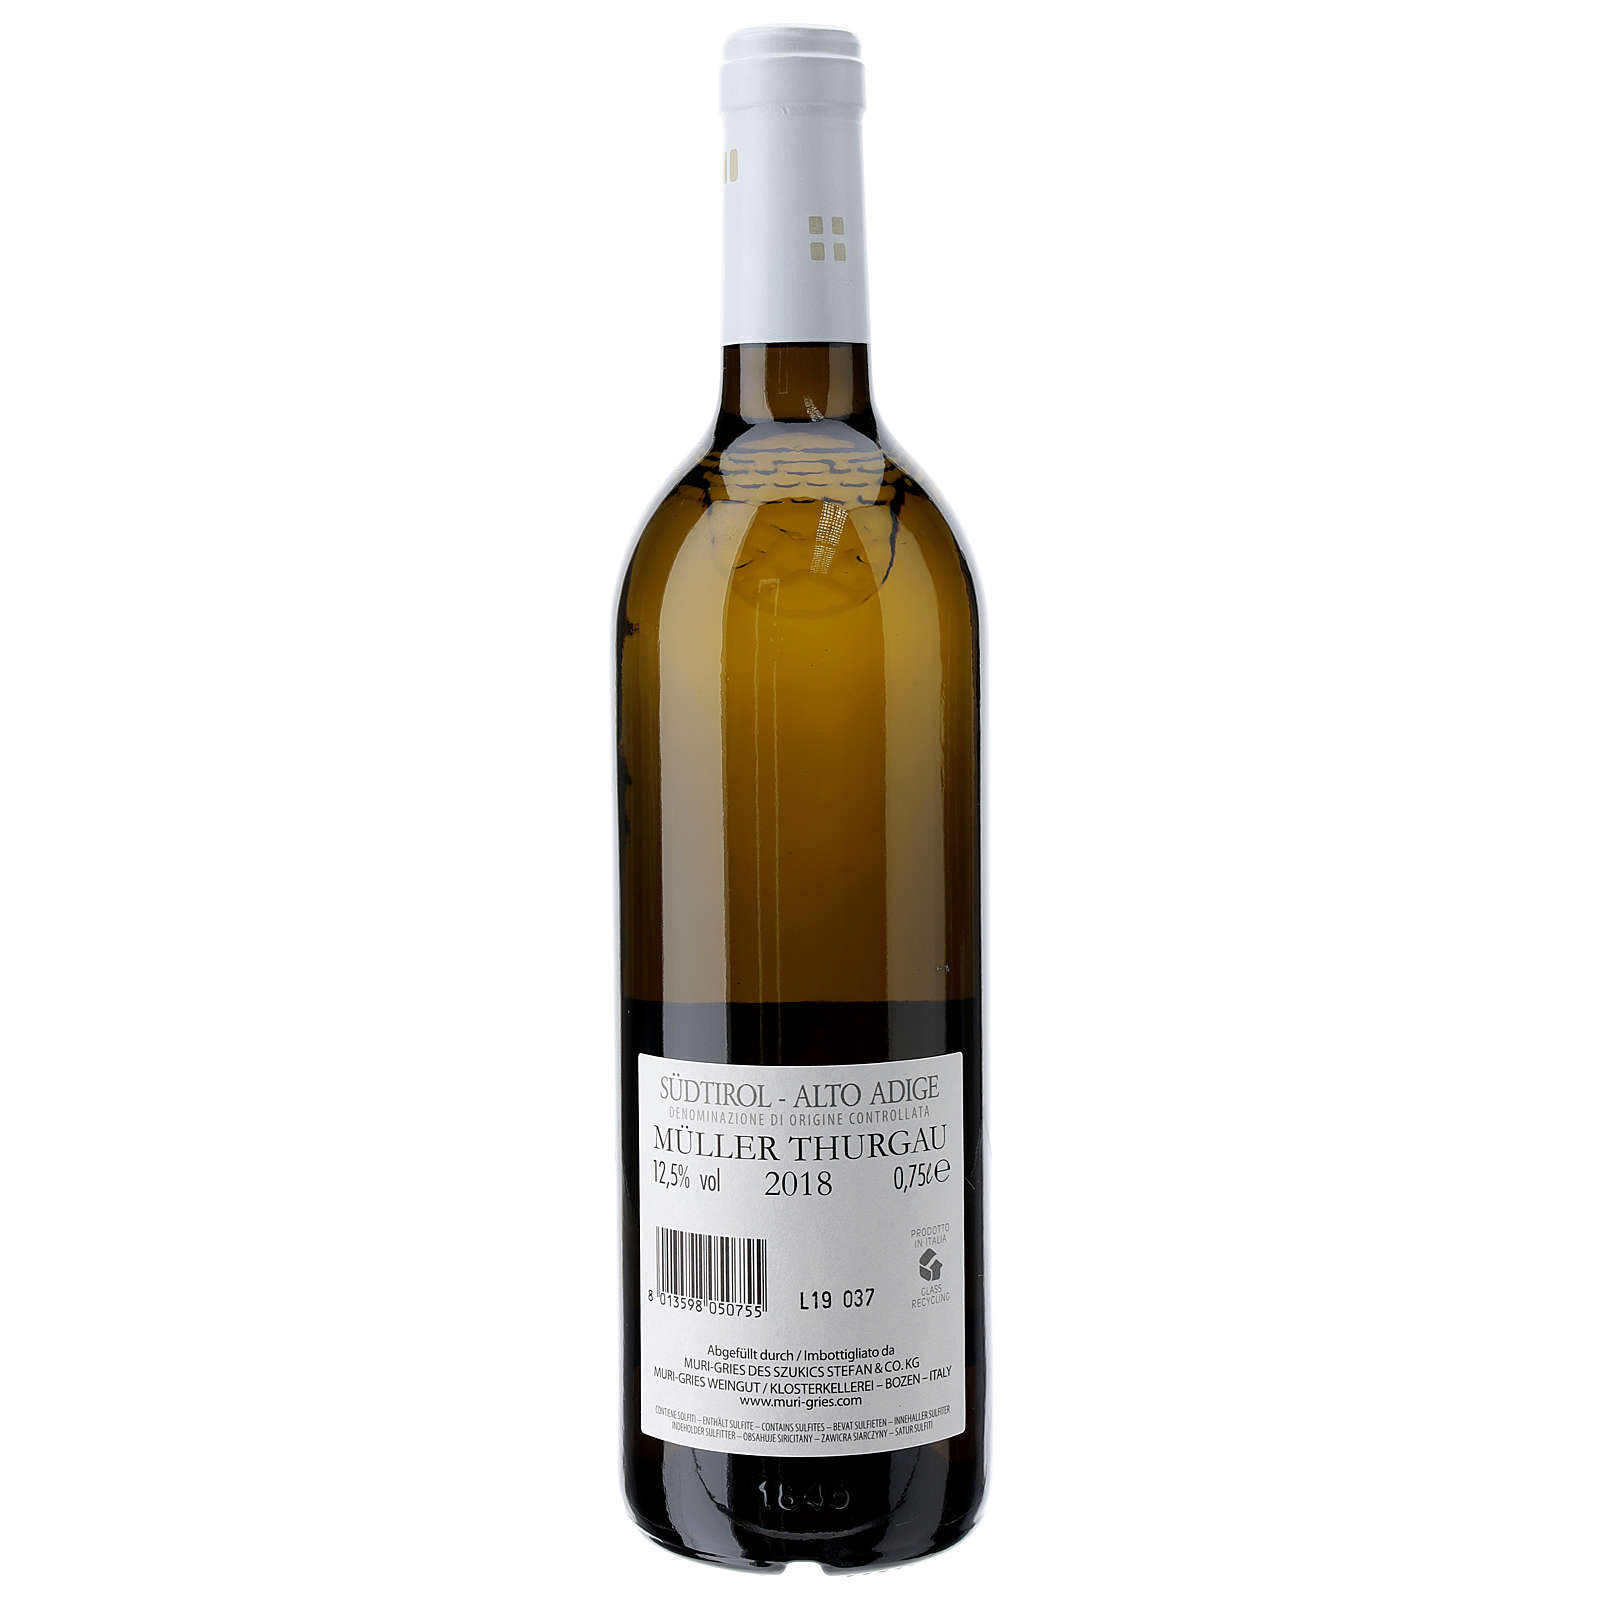 Vino Muller Thurgau DOC 2018 Abbazia Muri Gries 750 ml 3